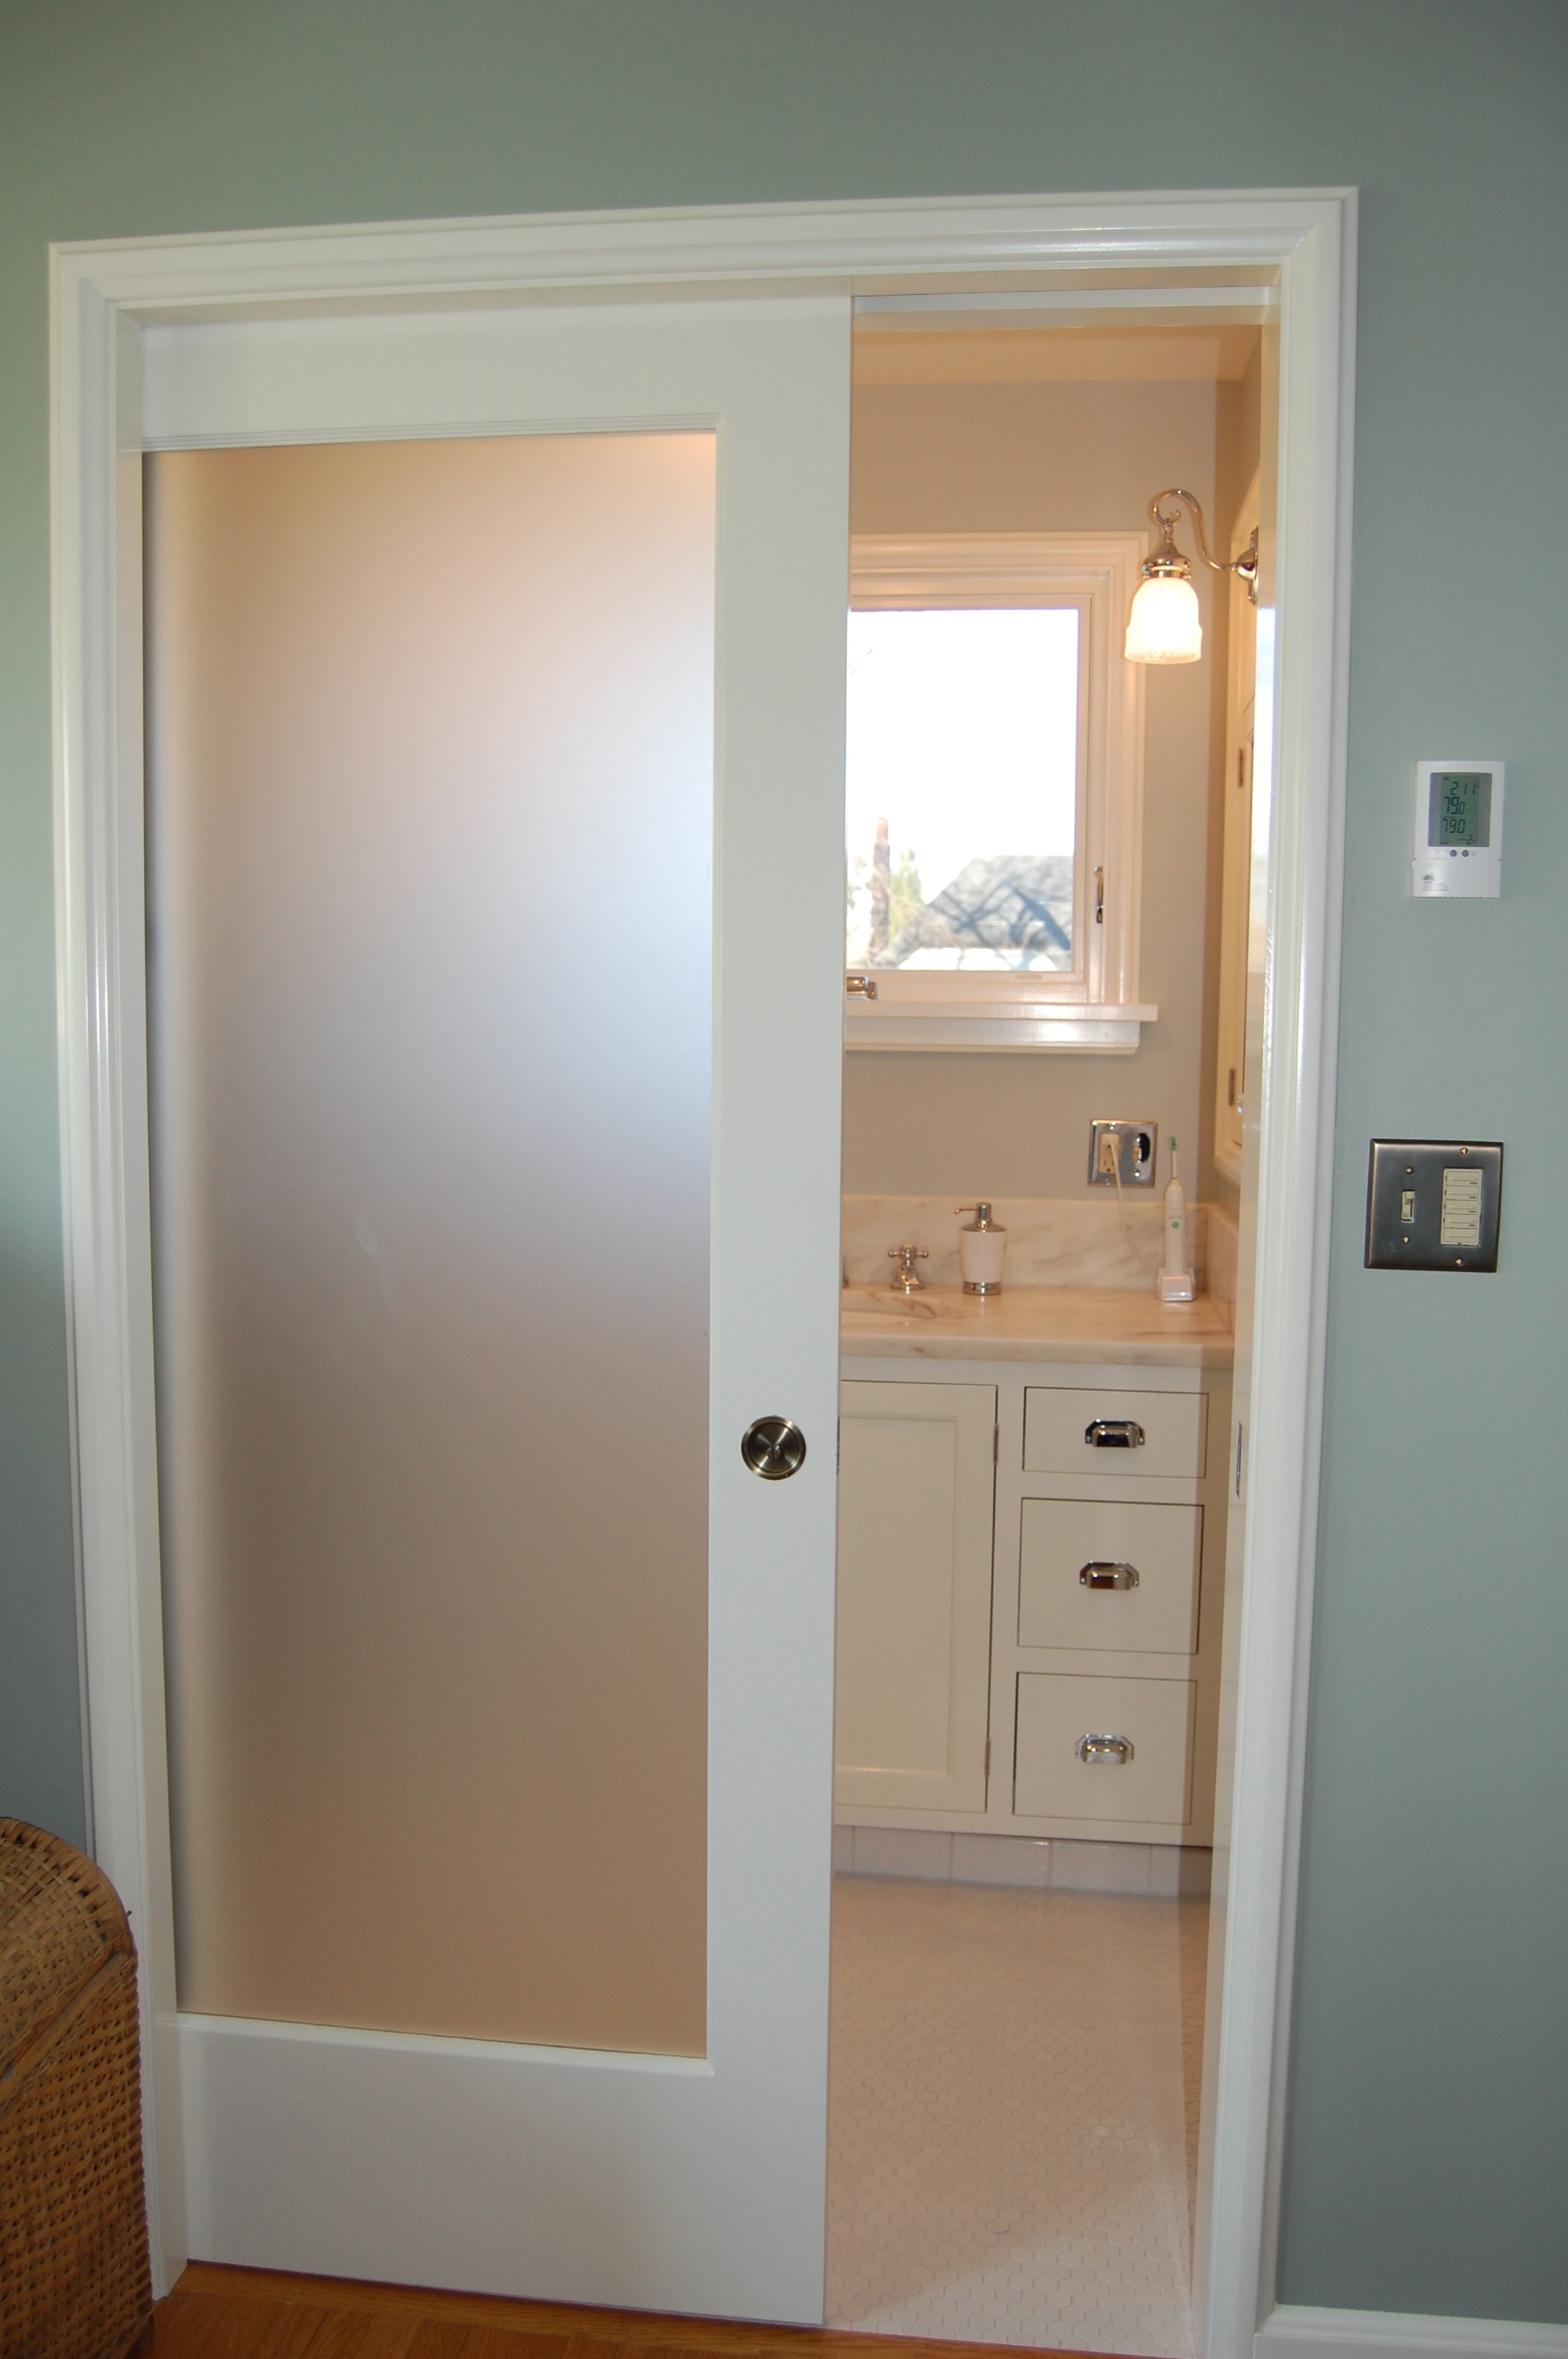 Bathroom Entry Door With Frosted Glass